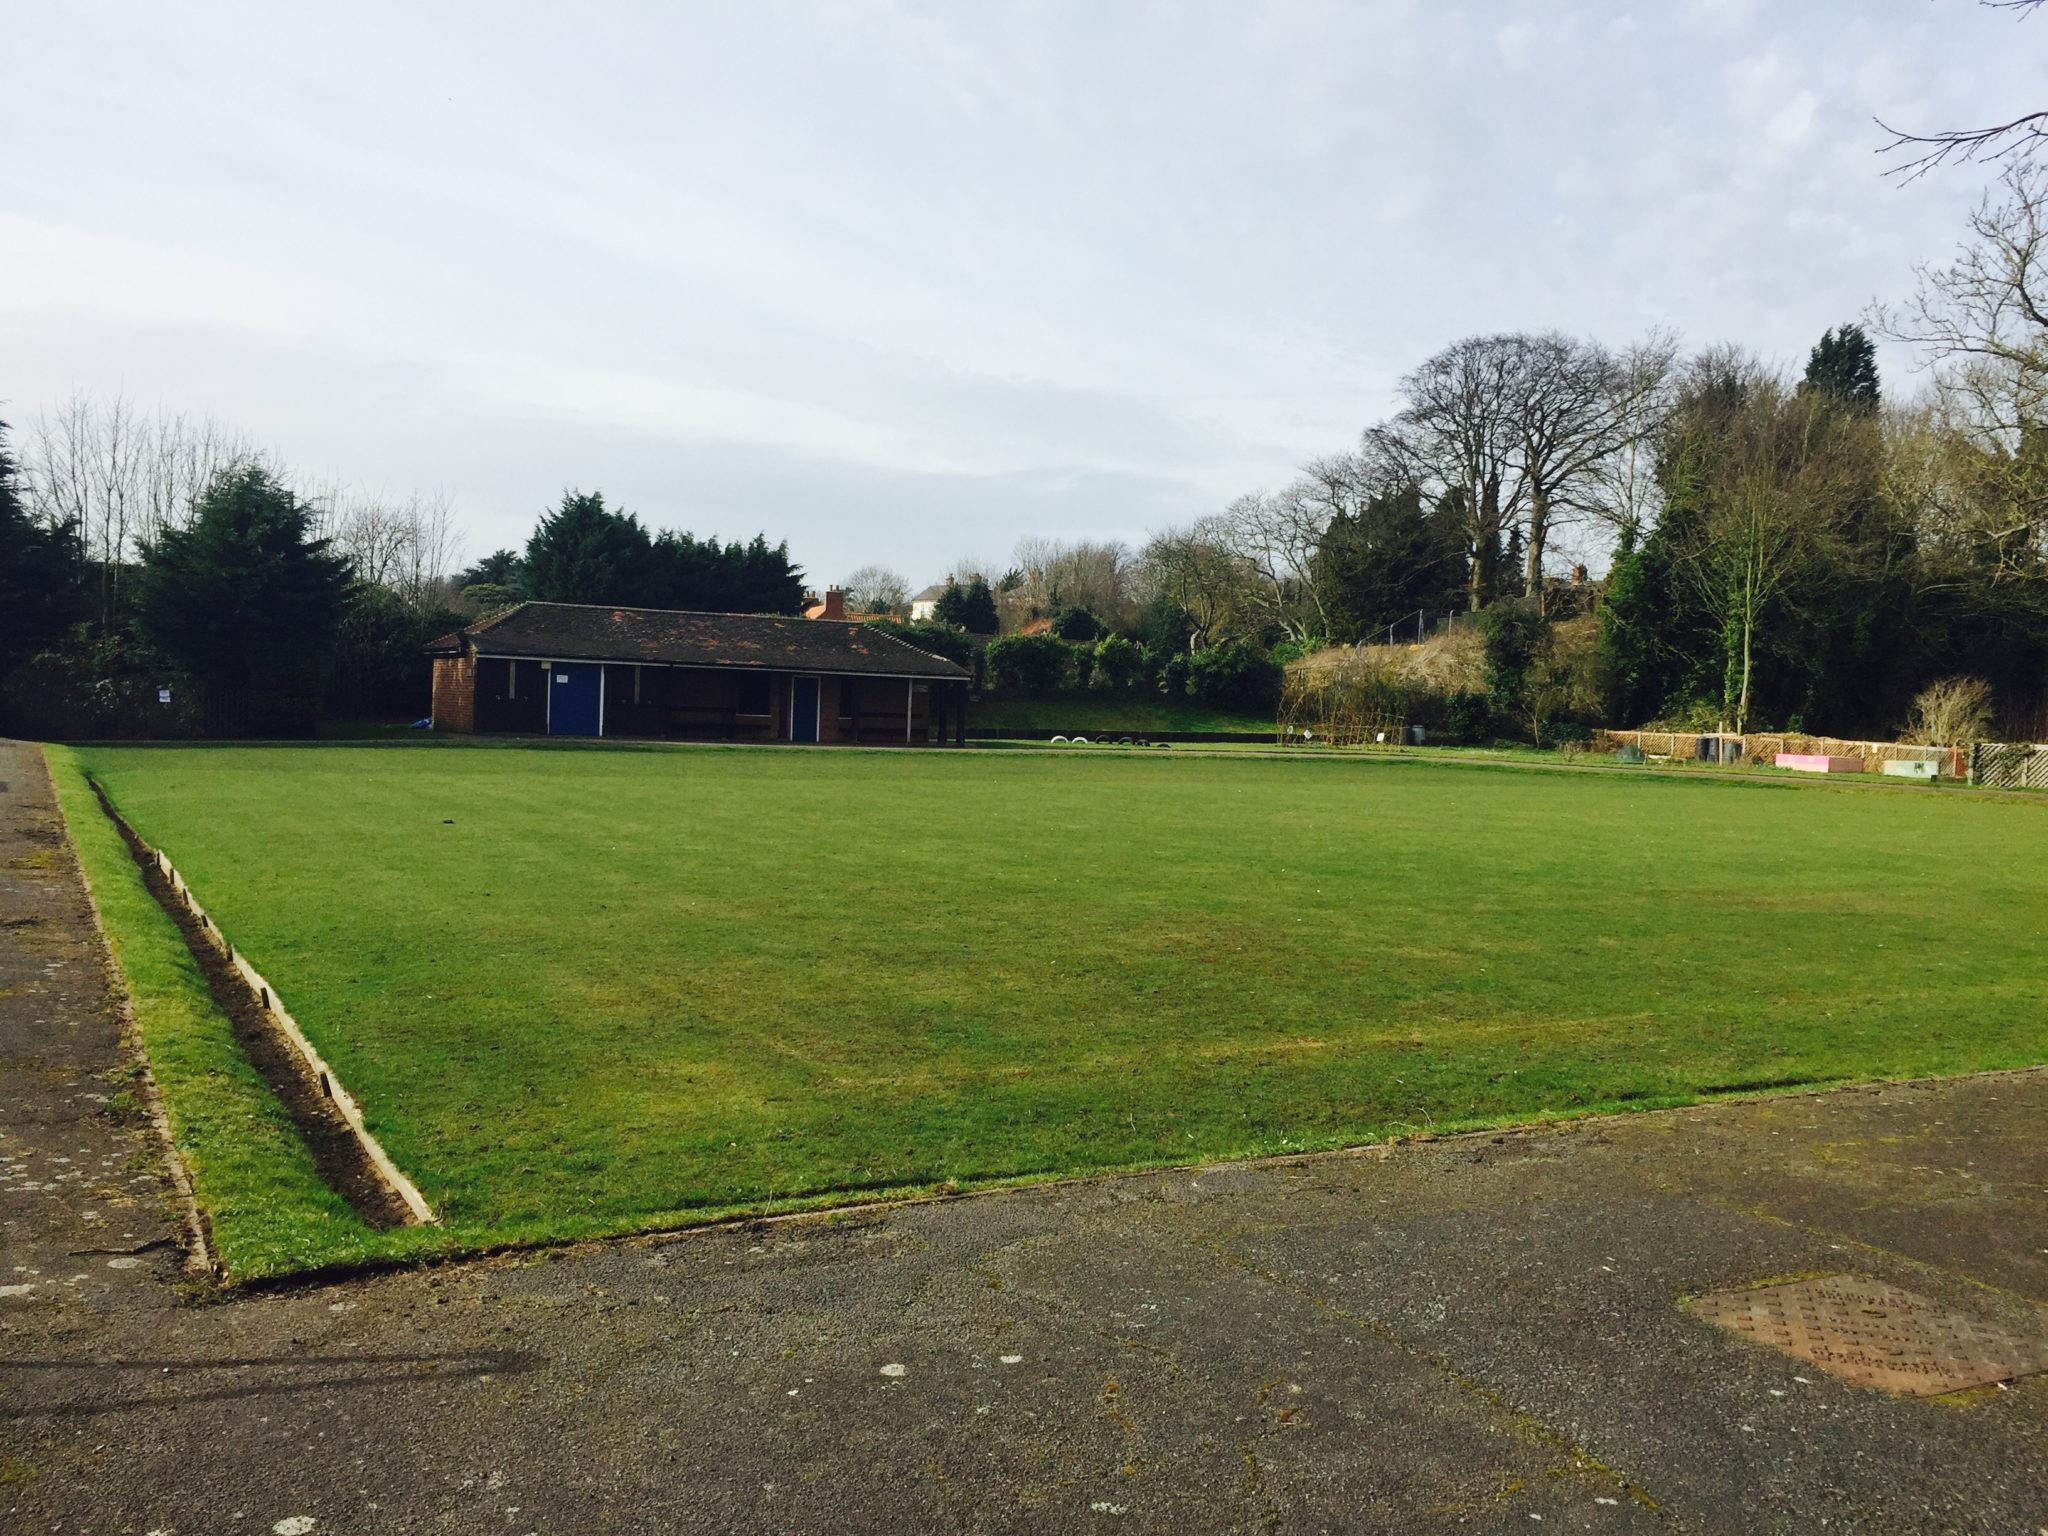 Outdoor Bowling Green, Charles Street Recreational Ground, Louth, Lincolnshire